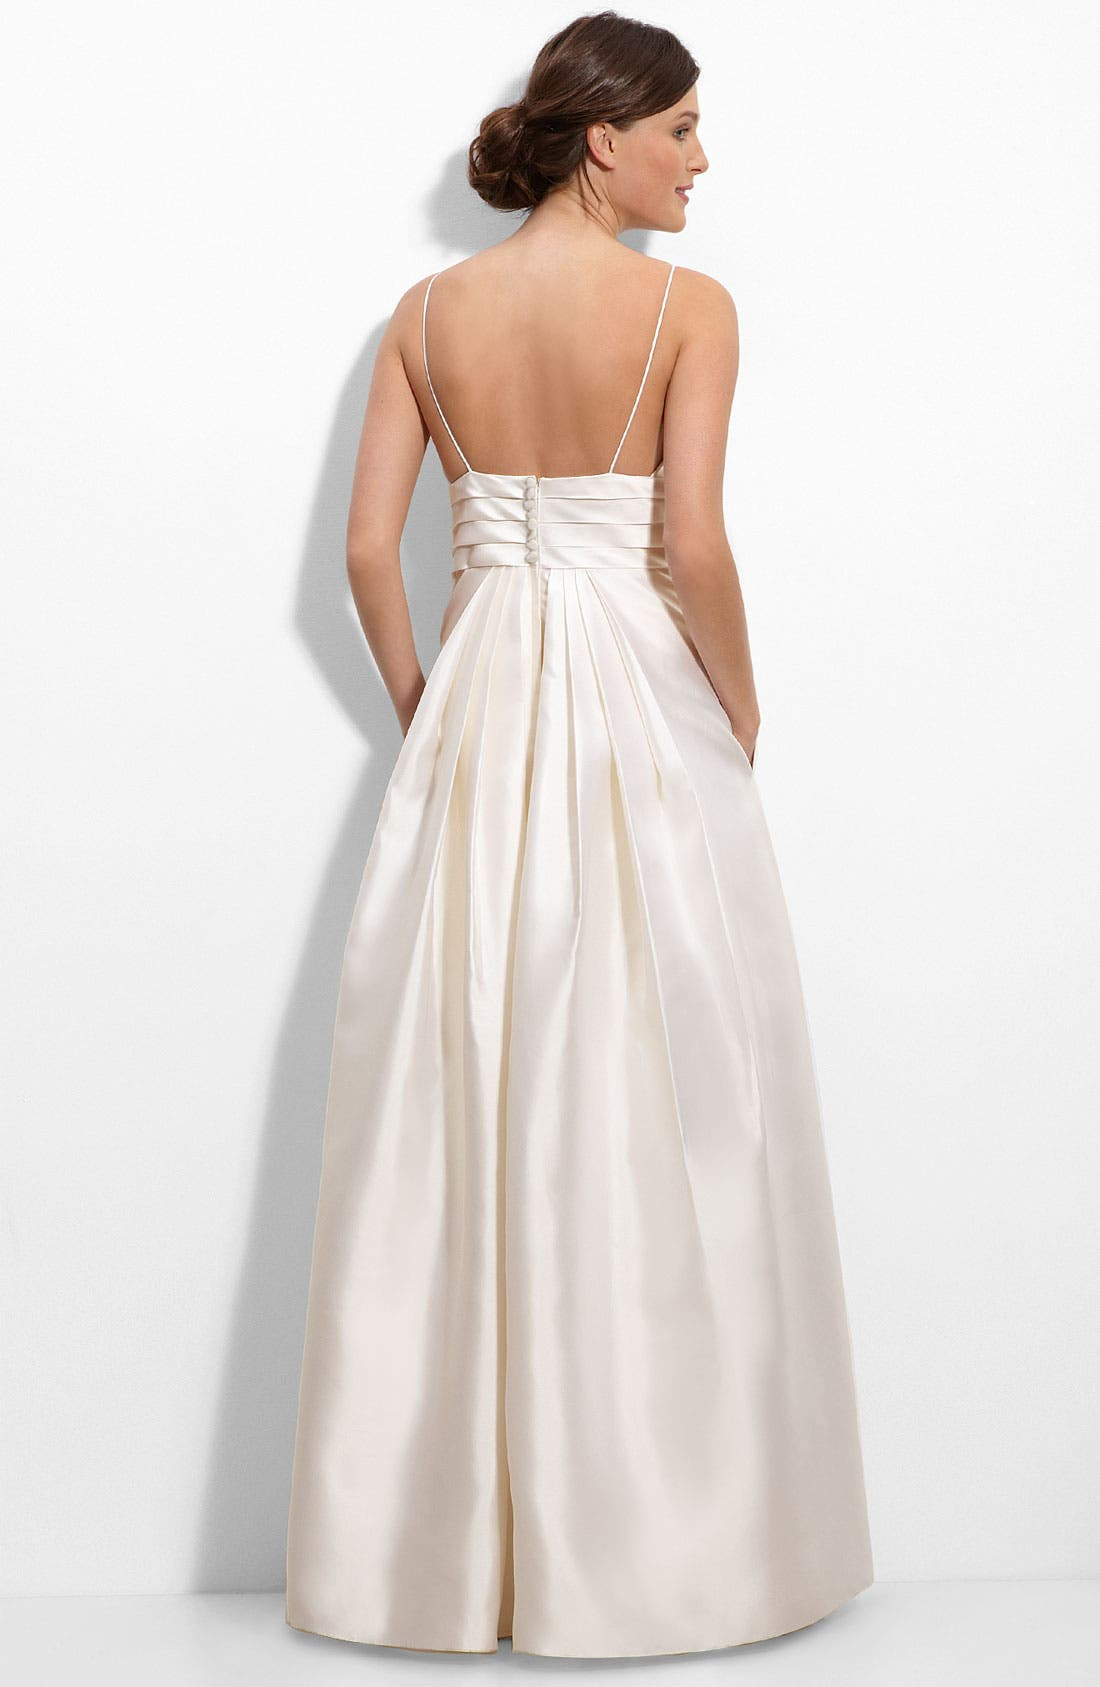 ELIZA J,                             Beaded Lace Inset Silk Mikado Gown,                             Alternate thumbnail 2, color,                             900